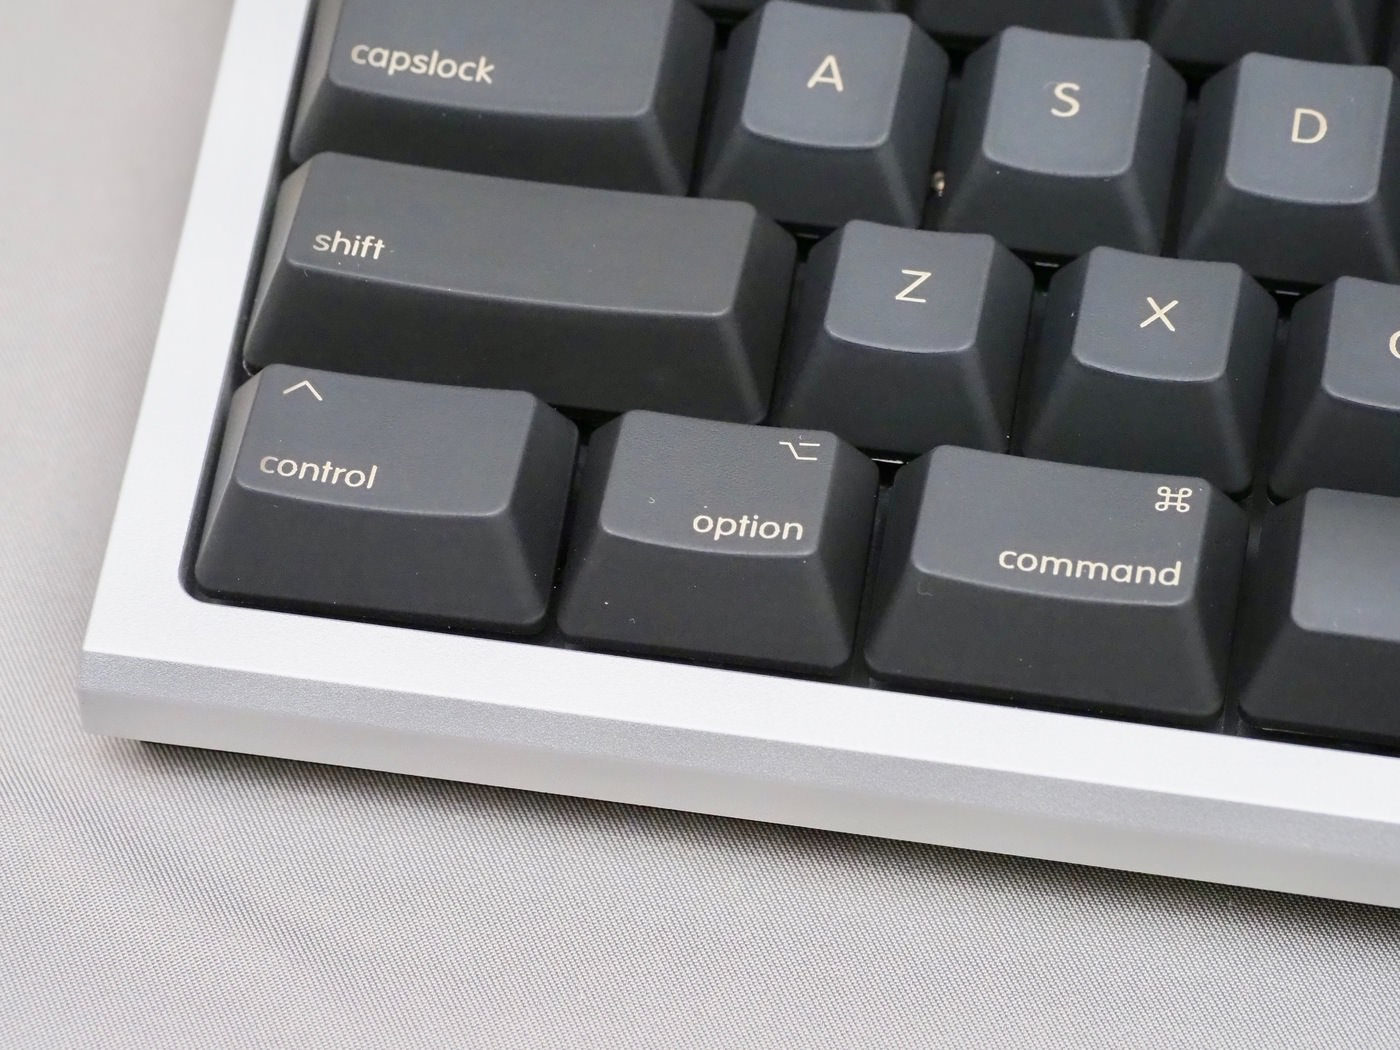 realforce-tkl-for-mac-pfu-limited-edition-review_00021